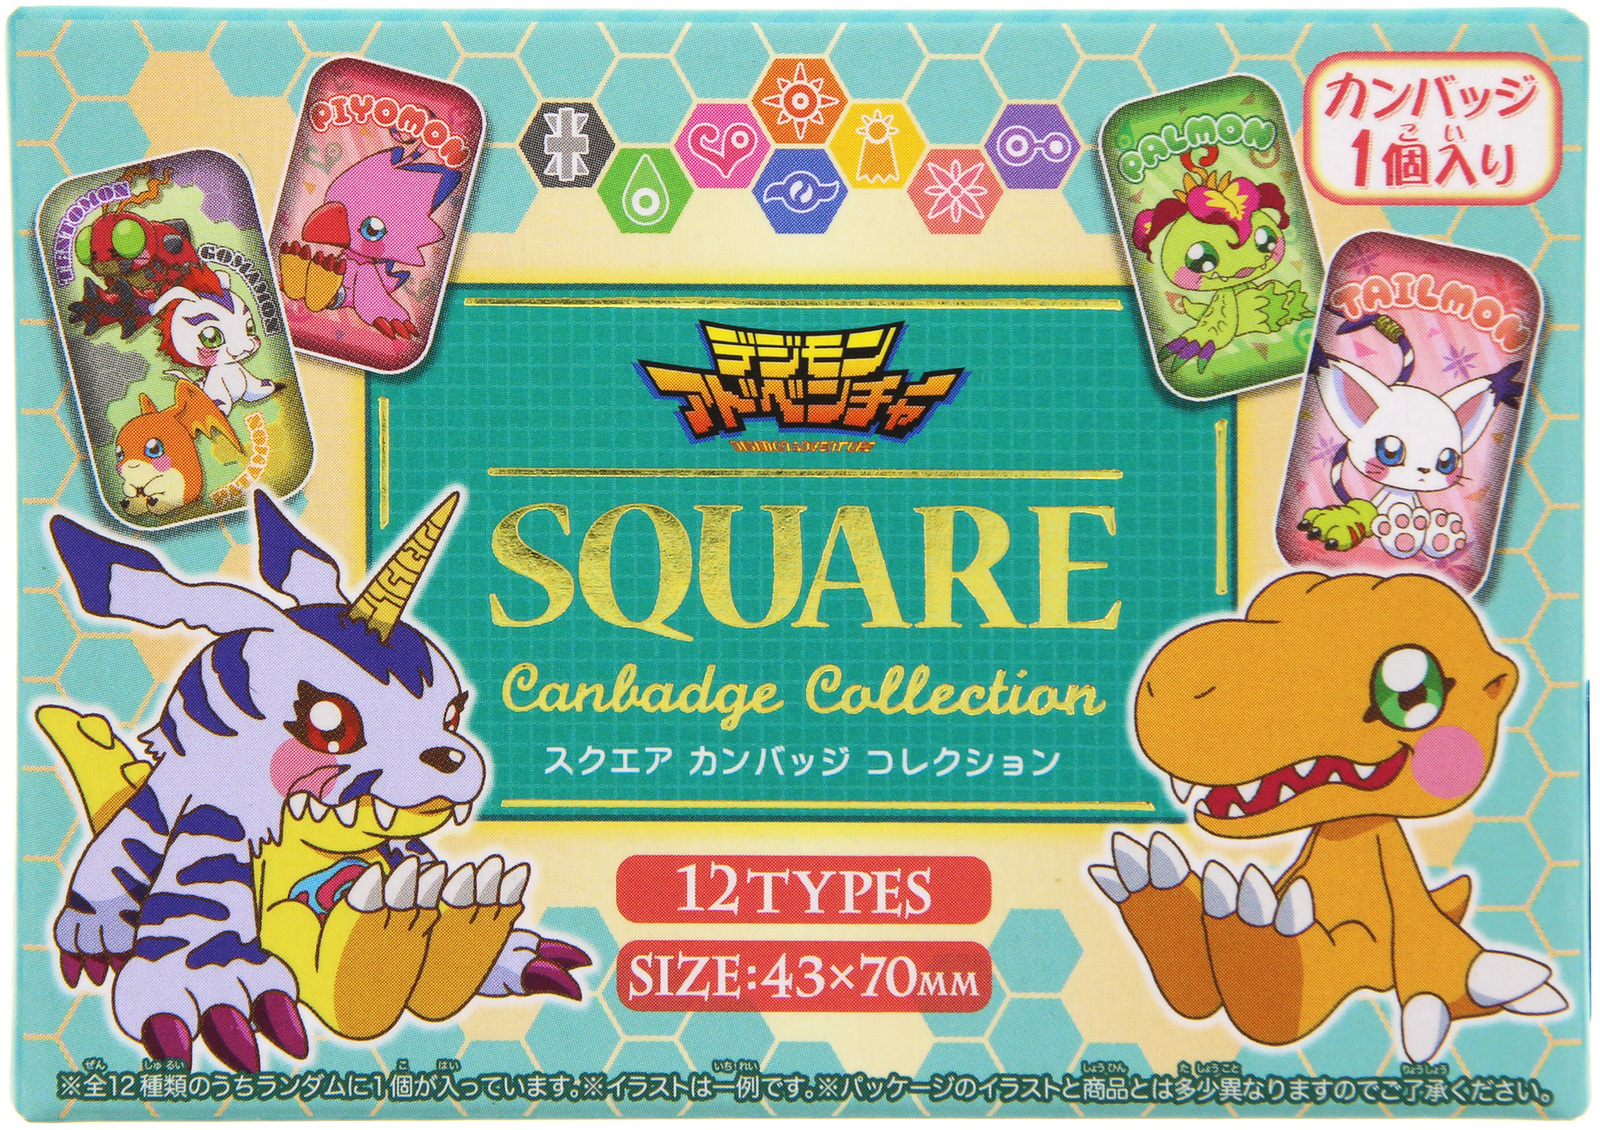 Digimon Adventure: Square Can Badge (Blind Bag) image